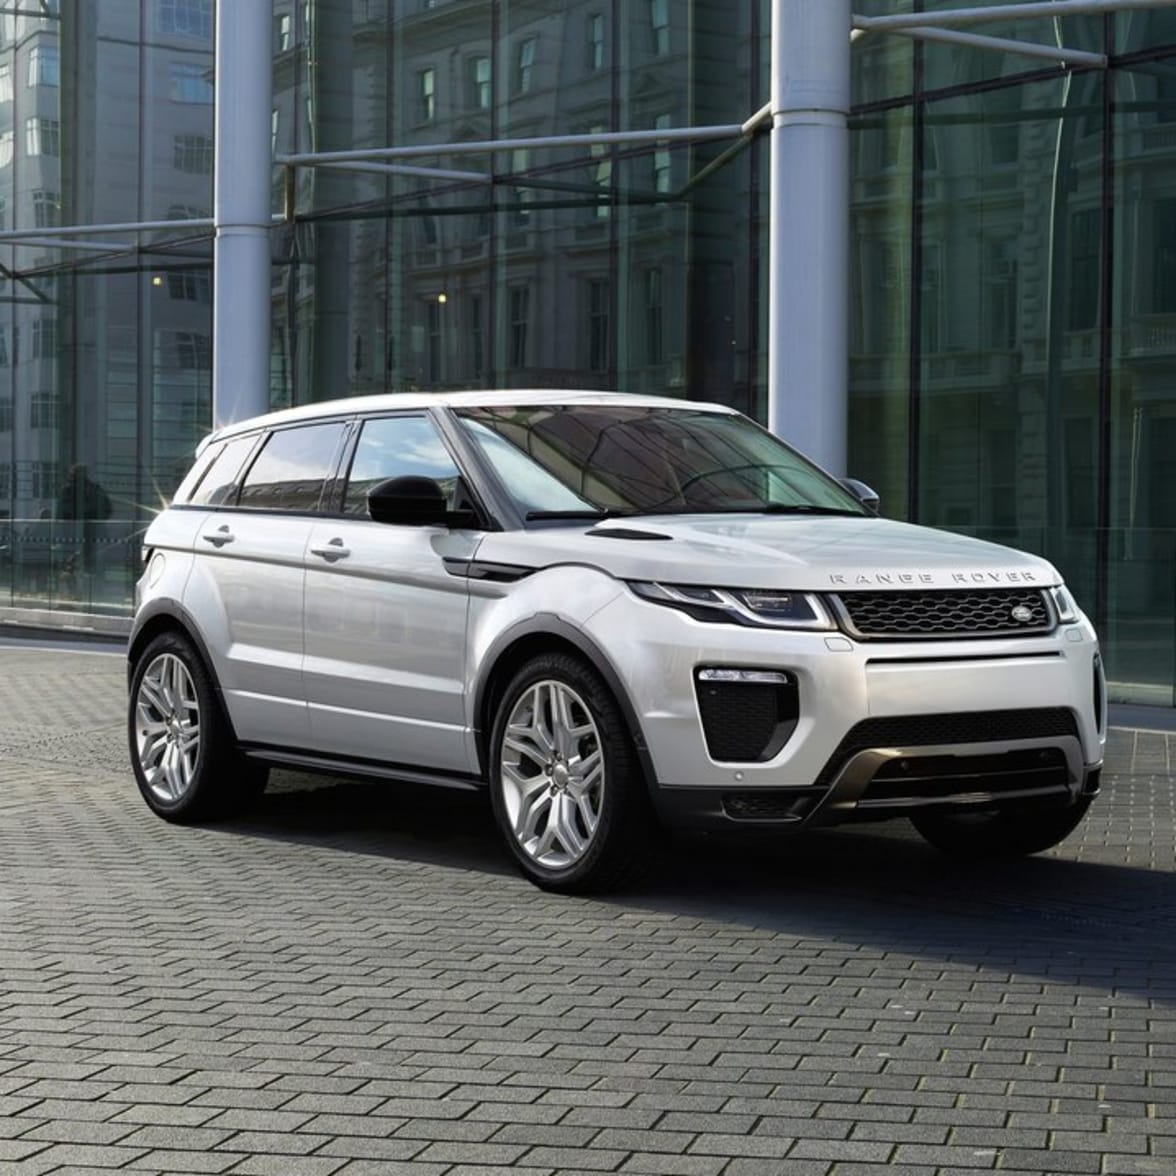 New Range Rover Evoque Belfast Charles Hurst Transmission Fluid Rovers Largest Trophy Cabinet The Model Has Won More Than 200 Awards Internationally From Prestigious Car Of Year And Best Compact Suv